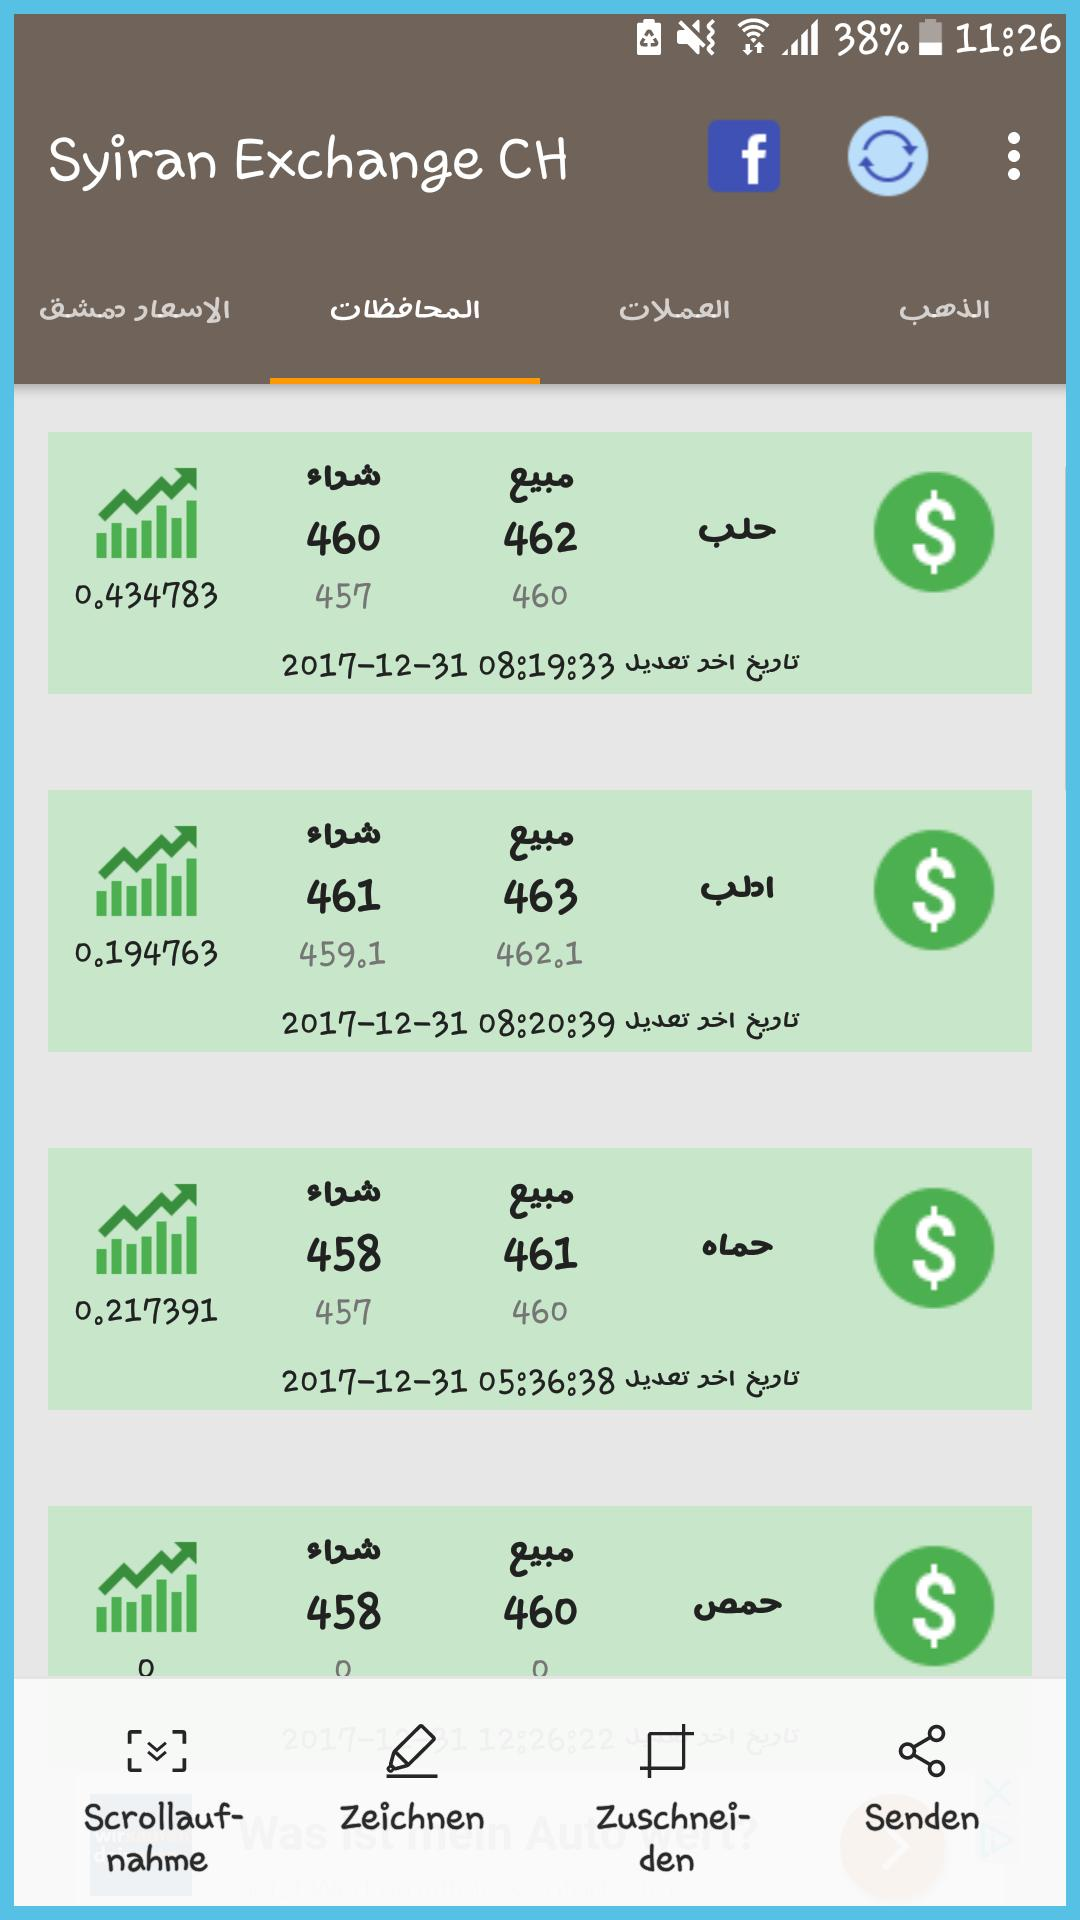 Syrian Exchange Ch for Android - APK Download